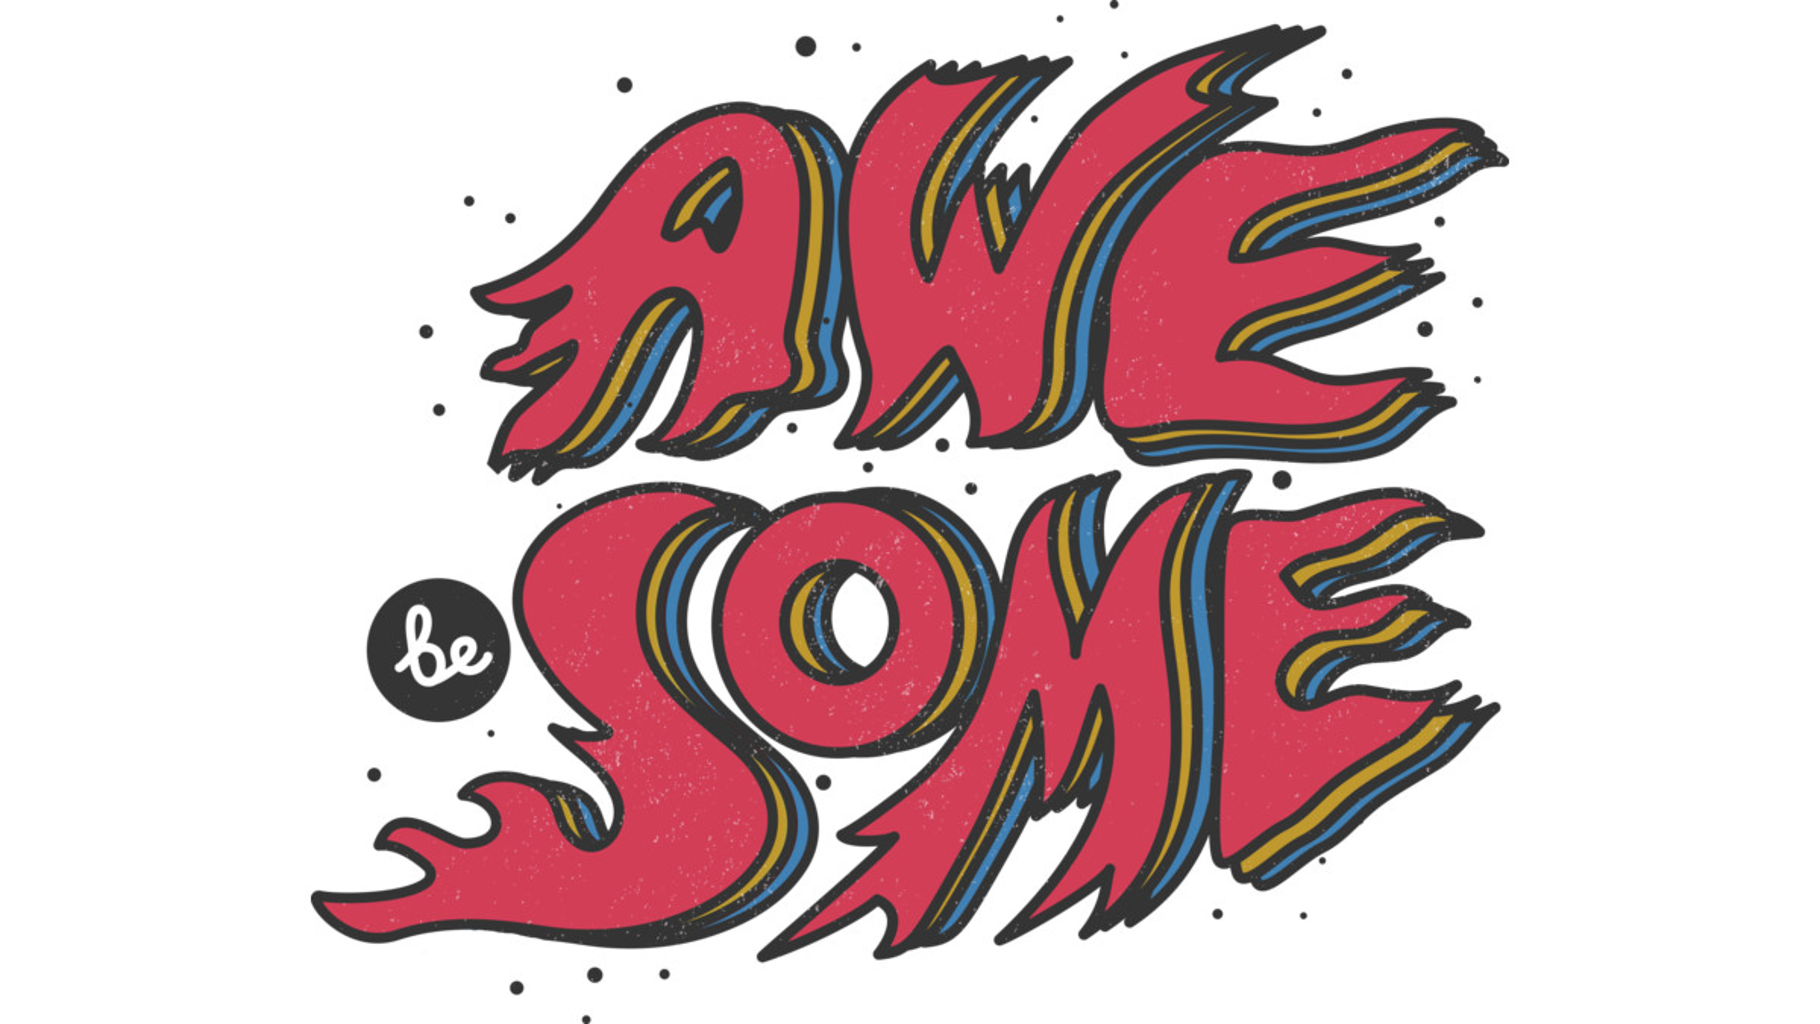 Design by Humans: Be Awesome